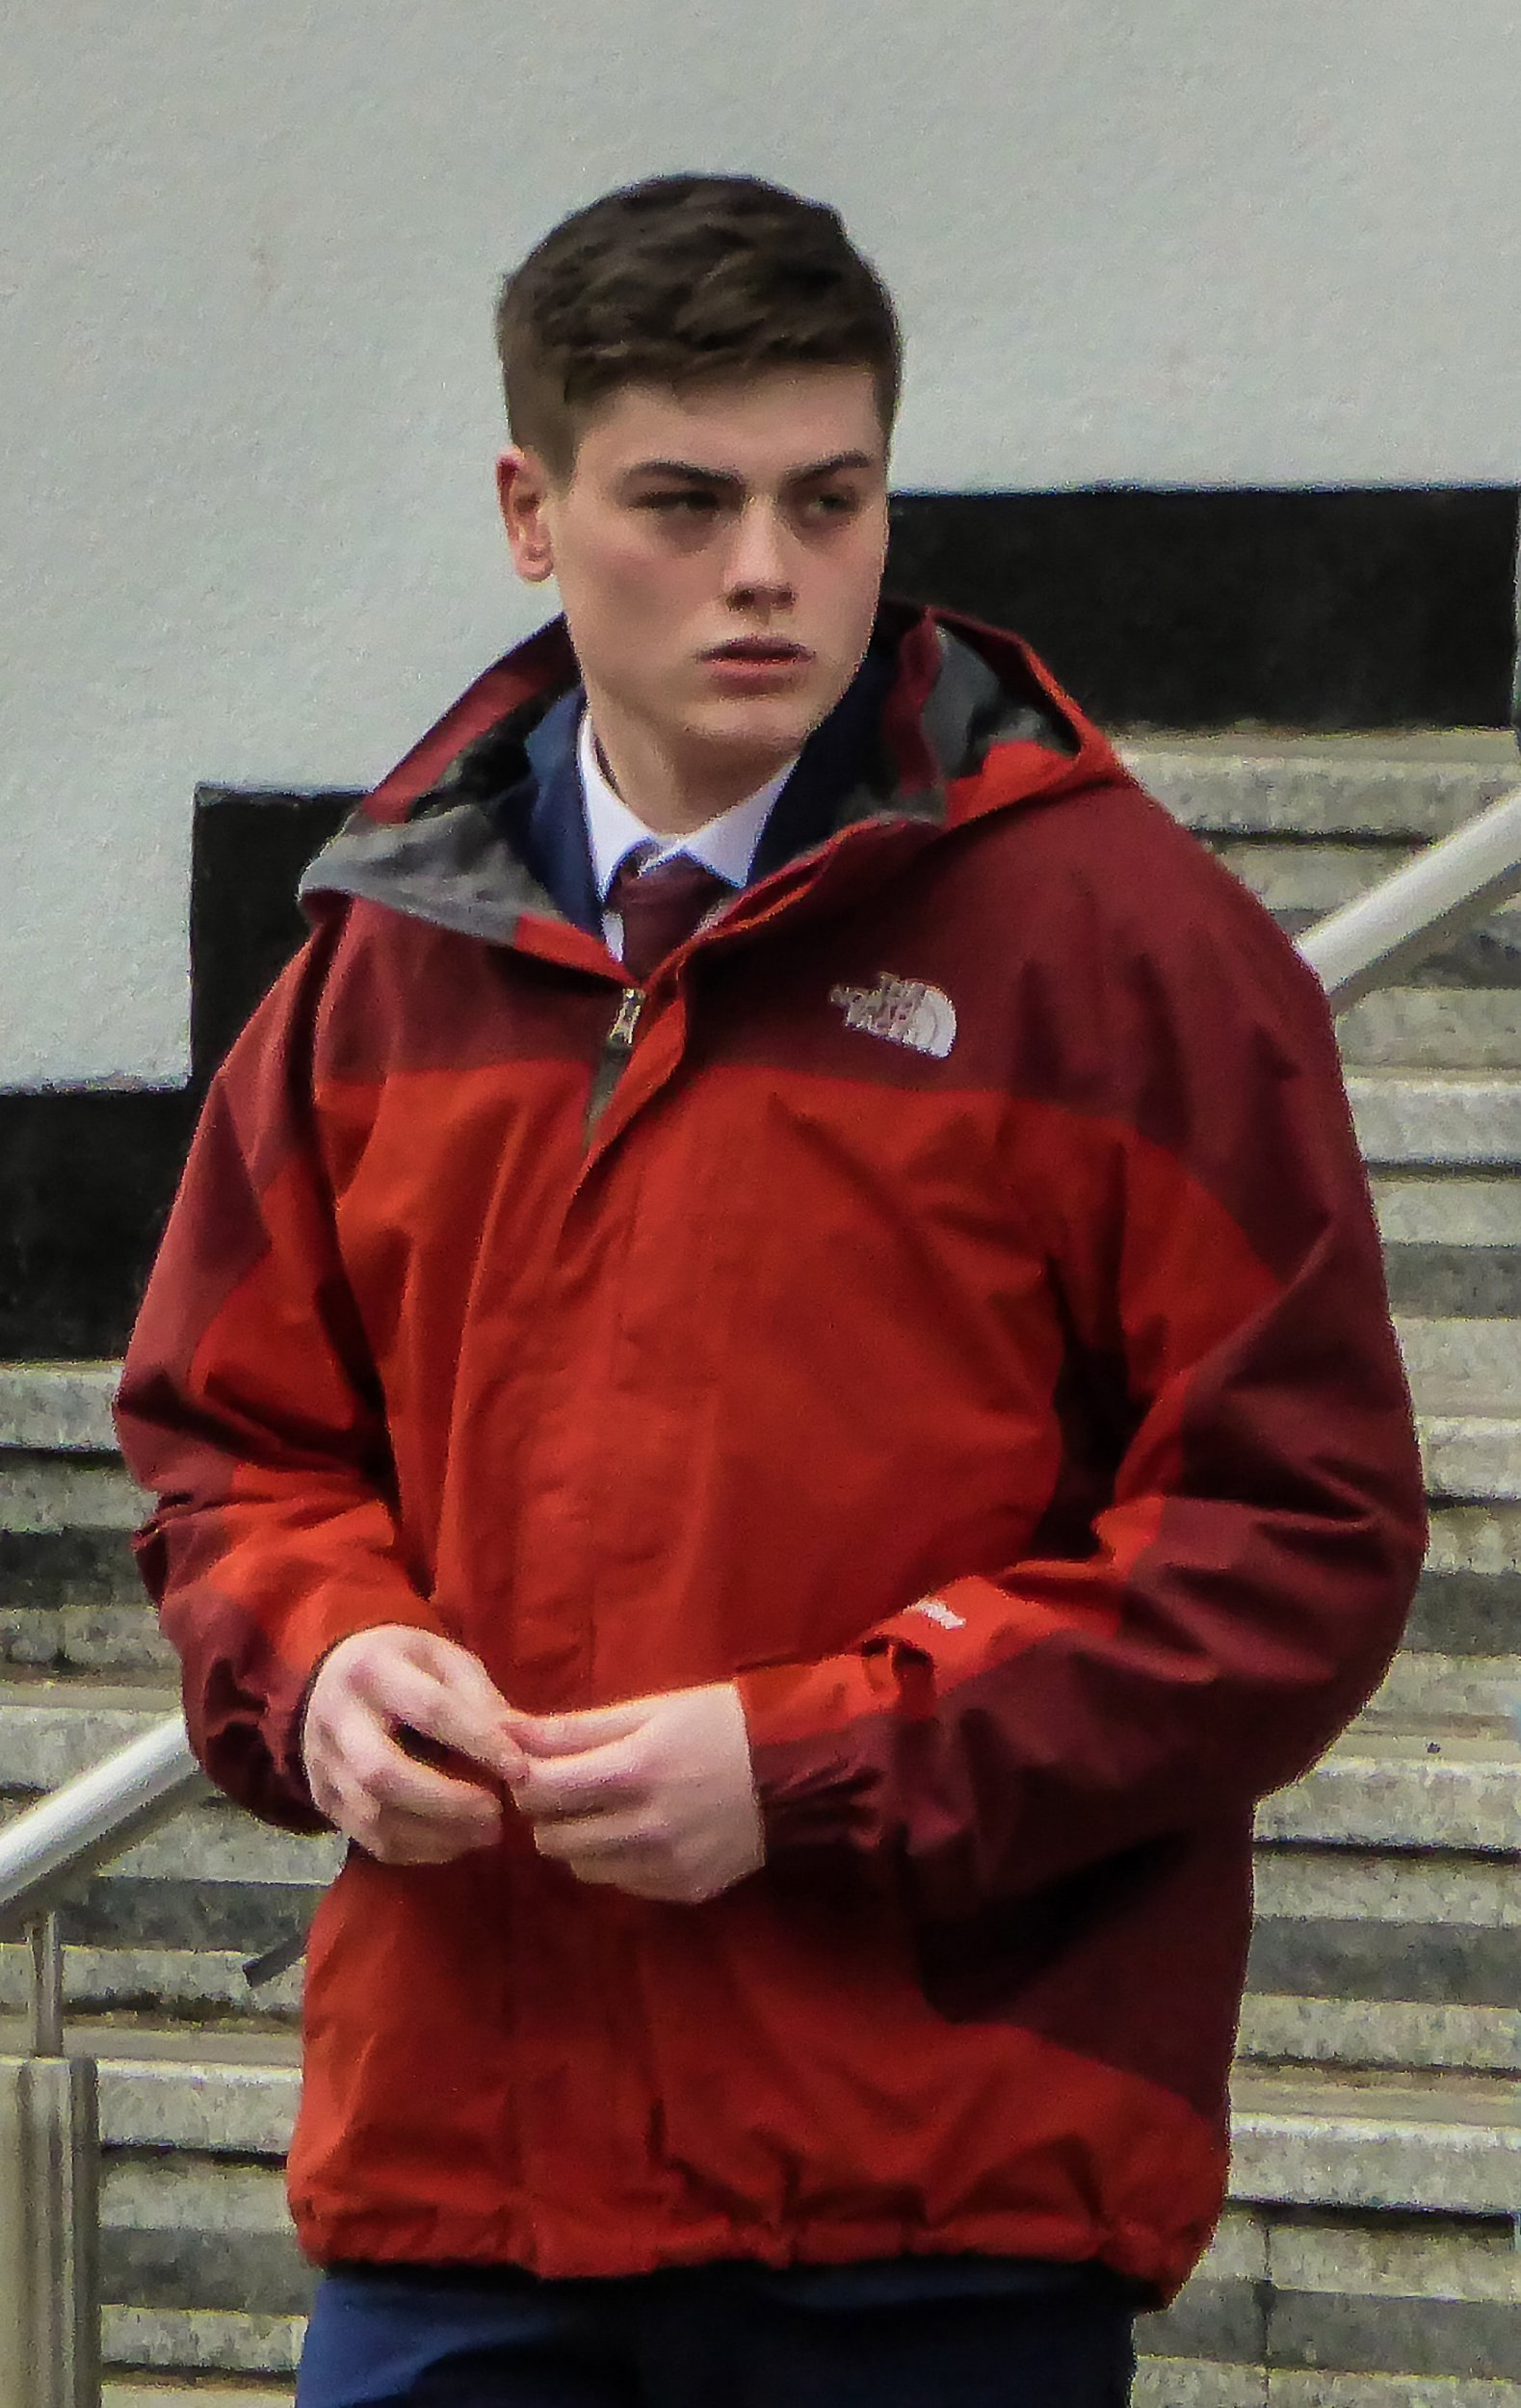 Jack Merrilees. A 21-year-old man stabbed his step-father to death with a kitchen knife during a drunken row about former Take That star GARY BARLOW, a court heard. See NTI story NTIBARLOW. Jack Merrilees is accused of knifing his mum's husband Eddie Cornet, 55, three times in the heart and liver, during a boozy house party. Mr Cornet was killed after the attack at his home in the quite upmarket cul-de-sac in Hatton Park, near Warwick, at 11pm on May 2 last year. The jury heard Merrilees attacked Mr Cornet, who was married to his mum Stephanie, 55, after a day's drinking in pubs around the town with his girlfriend Becky Beveridge.